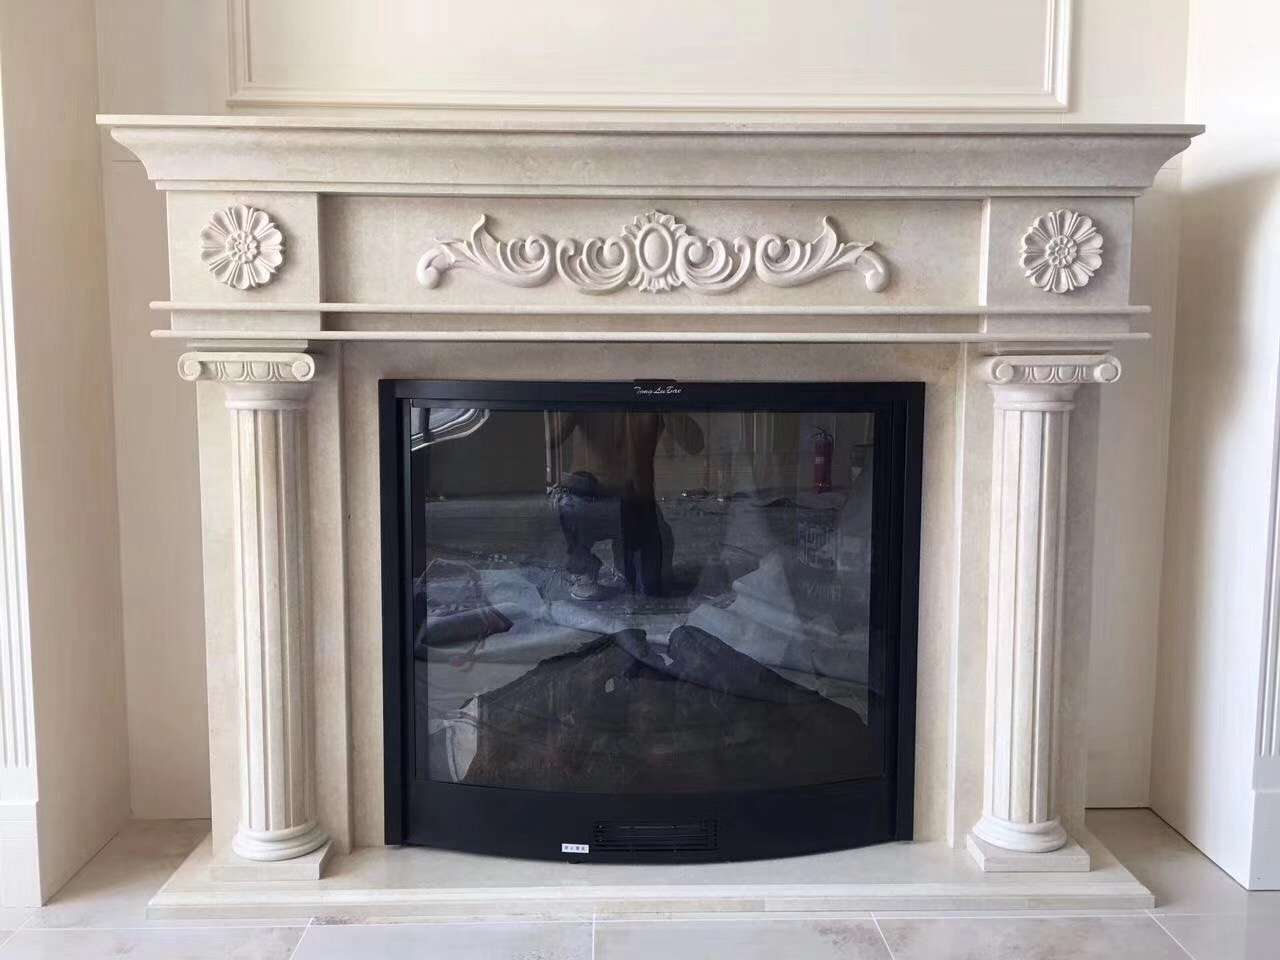 coal fireplace,gas fireplace prices,two sided gas fireplace,gas fireplace store,stoves and fireplaces,gas fireplace surround,wood electric fireplace,contemporary fireplace mantel